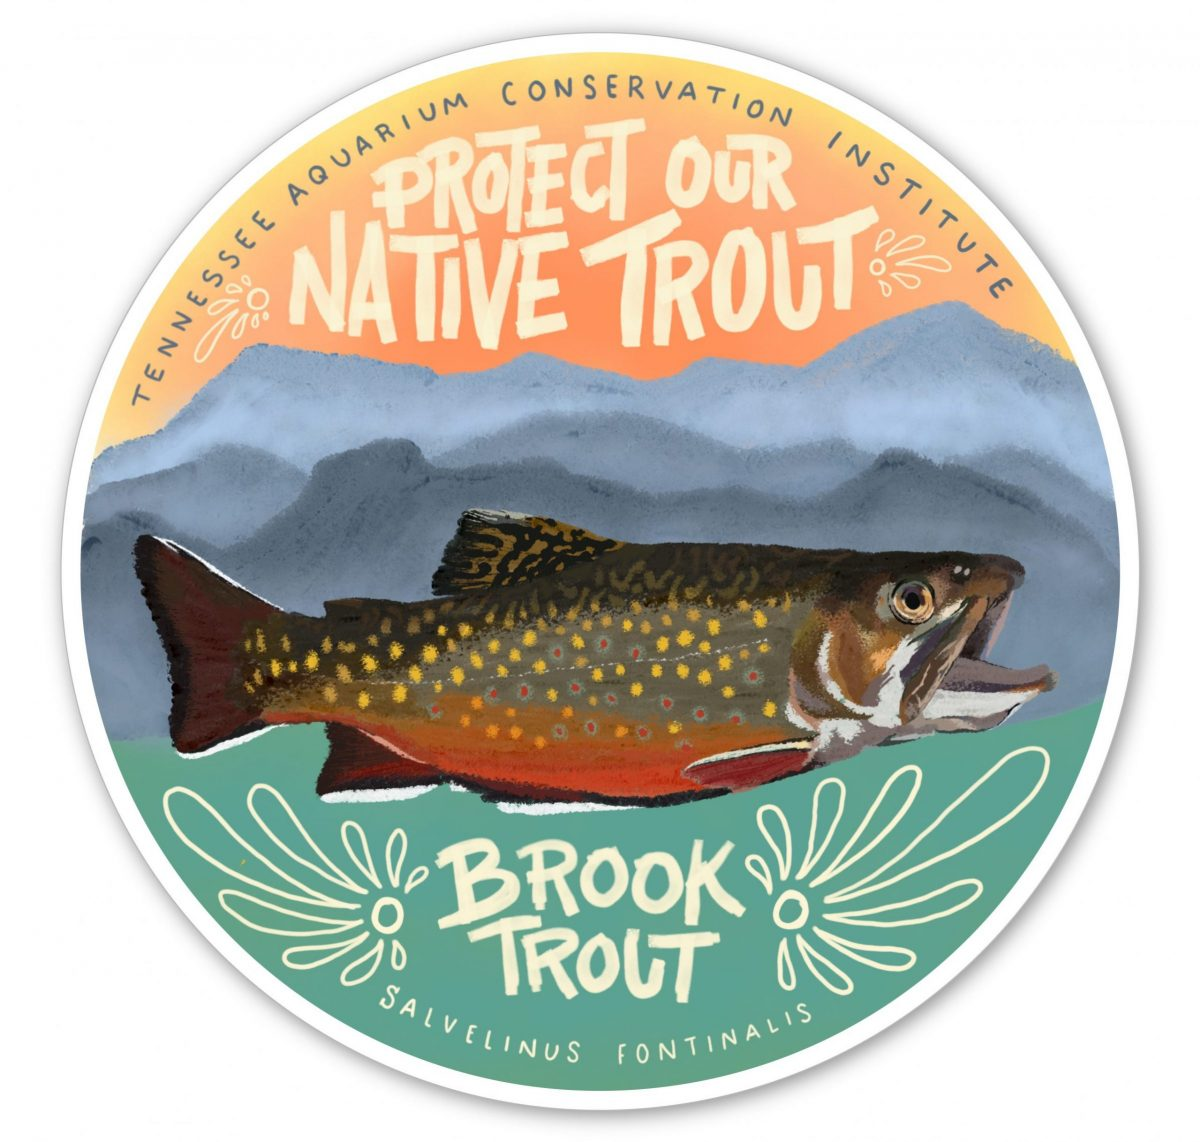 illustration of a brook trout with text - Protect Our Native Trout